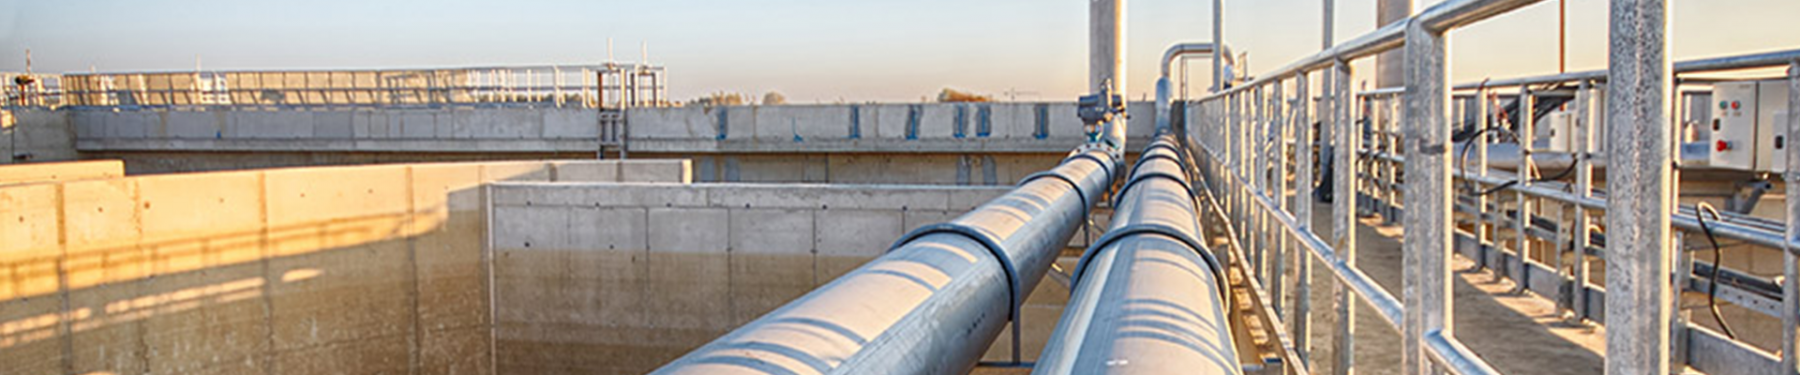 allied-pipe-freezing-services-ltd-case-study-single-page